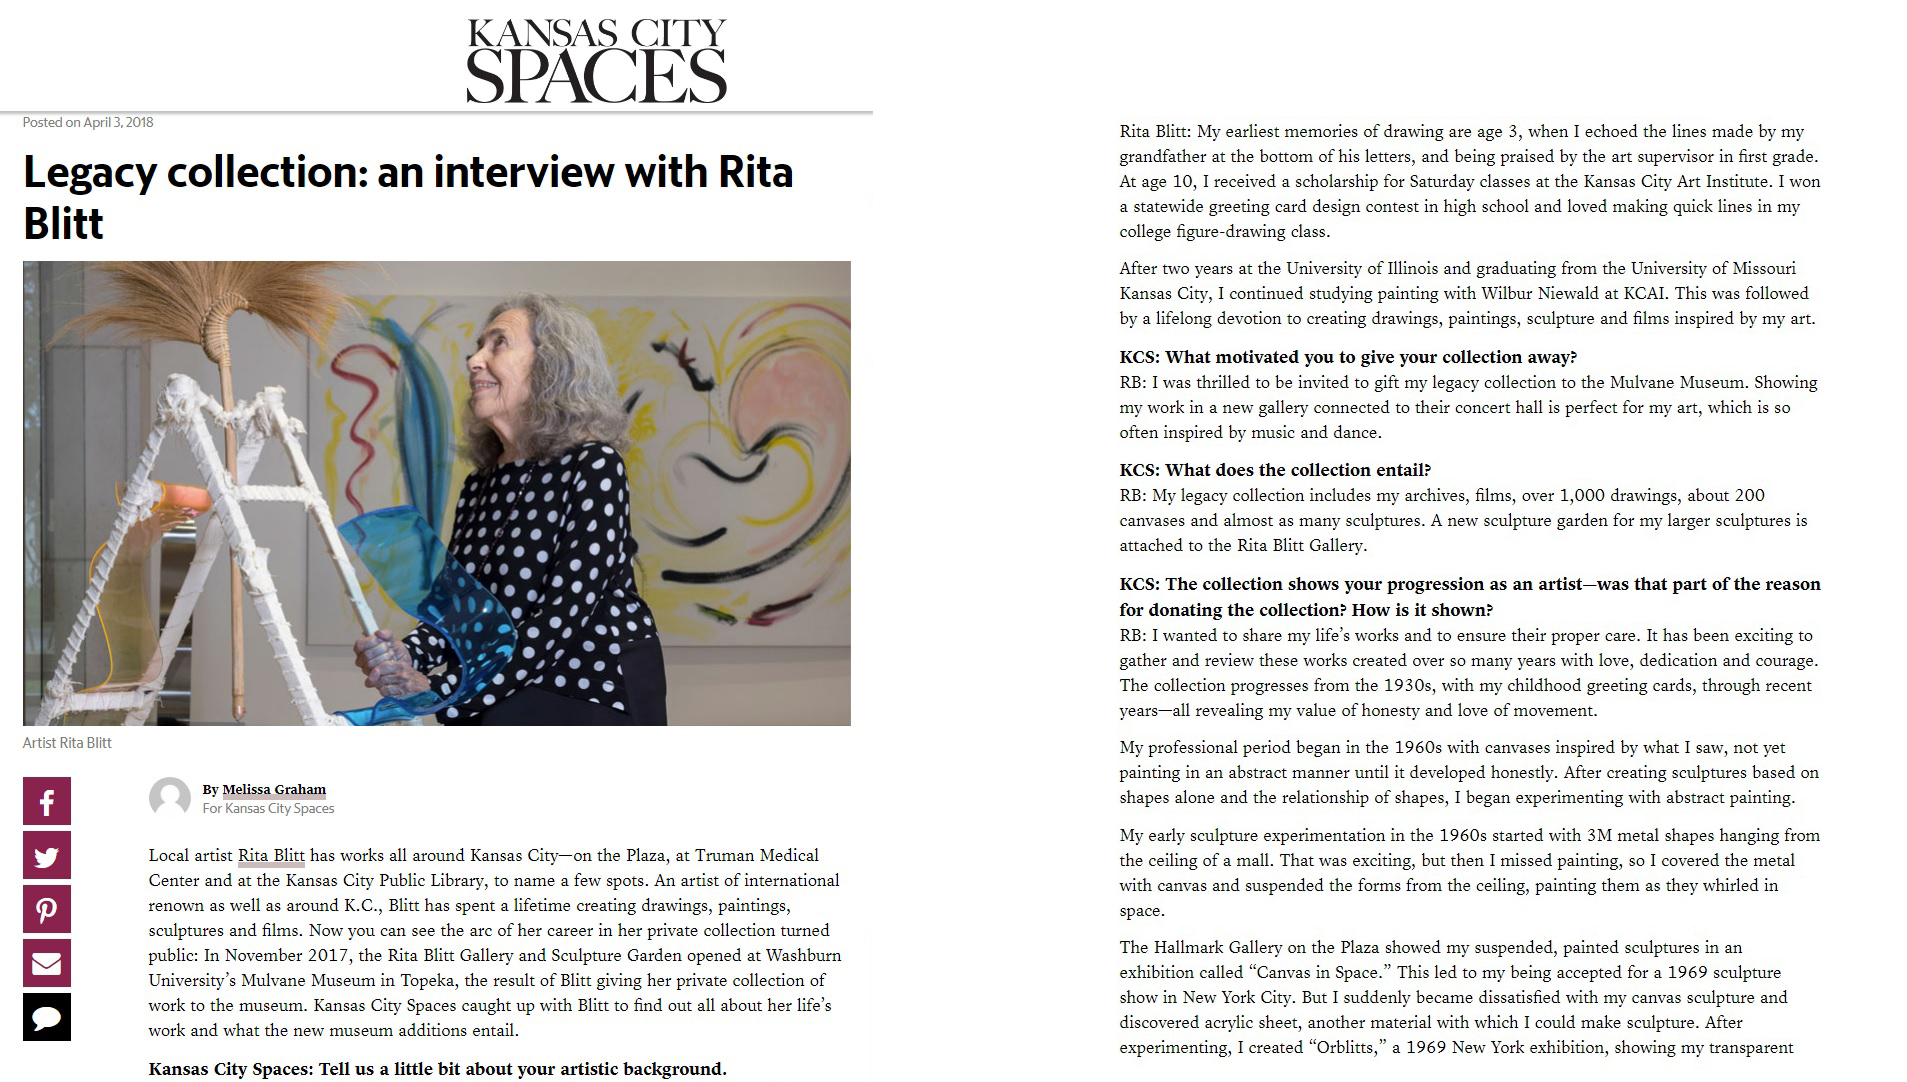 Kansas City Spaces interviewed Rita Blitt for its April 3, 2018 issue.